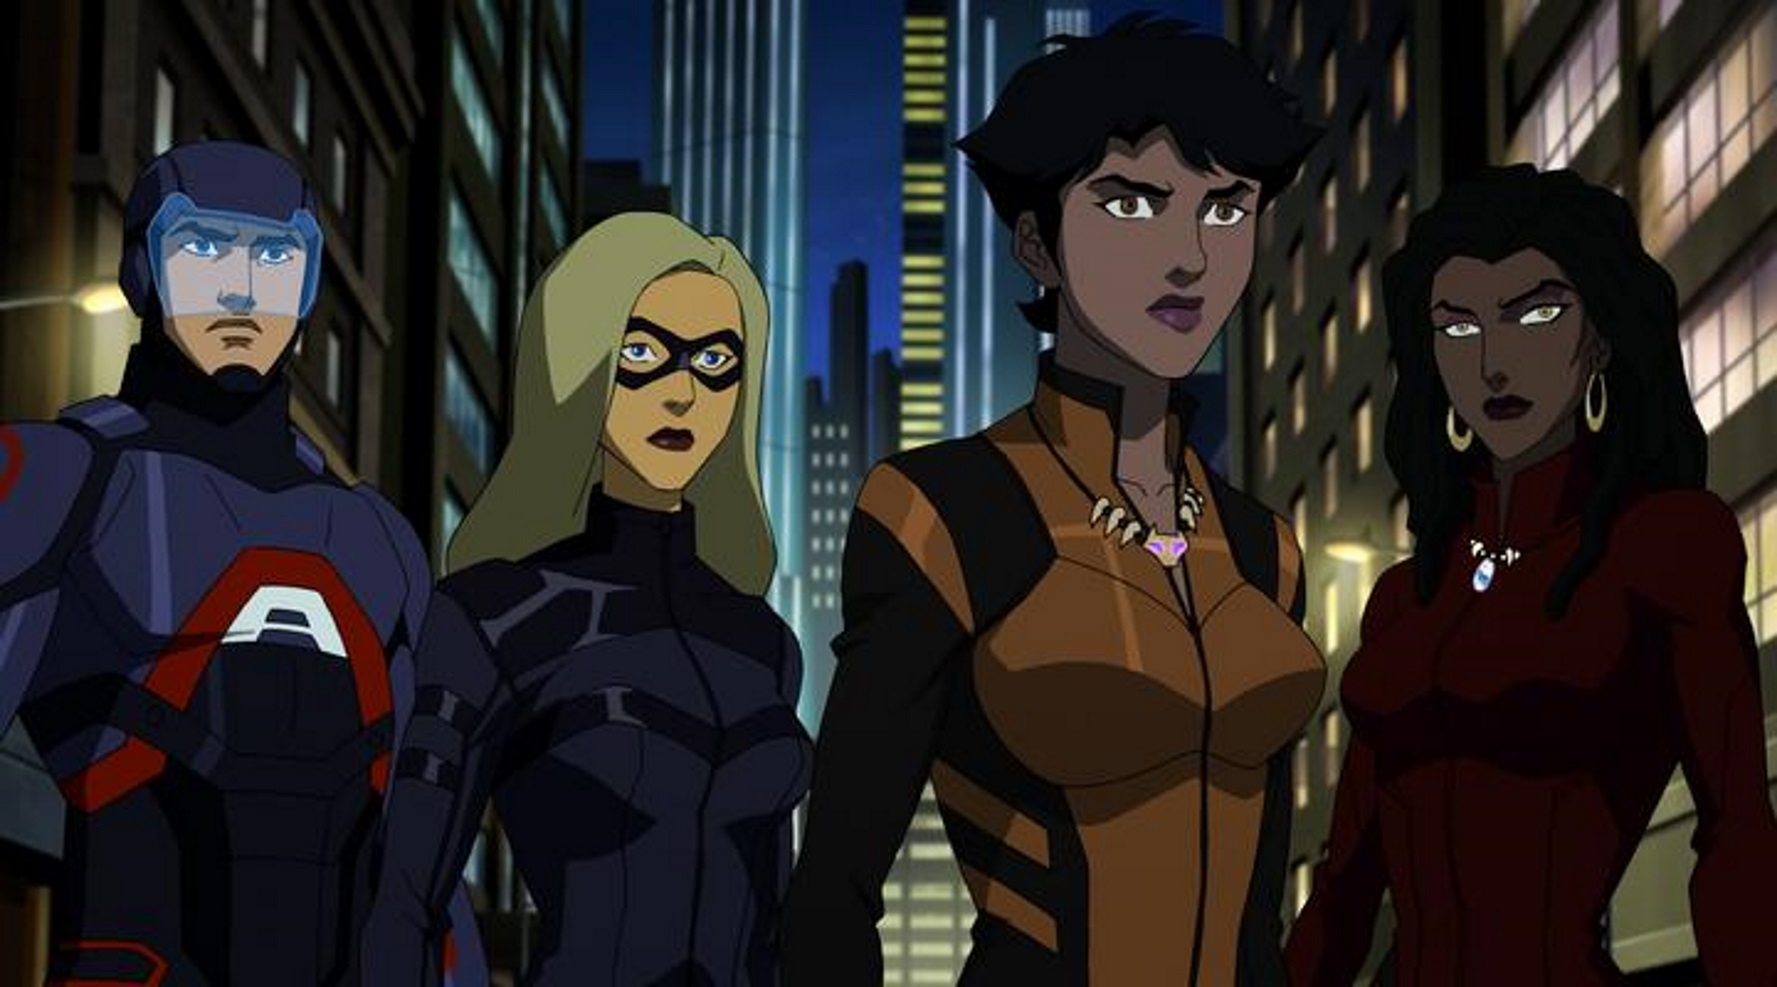 Megalyn Echikunwoke, Brandon Routh, and Katie Cassidy in Vixen (2015)